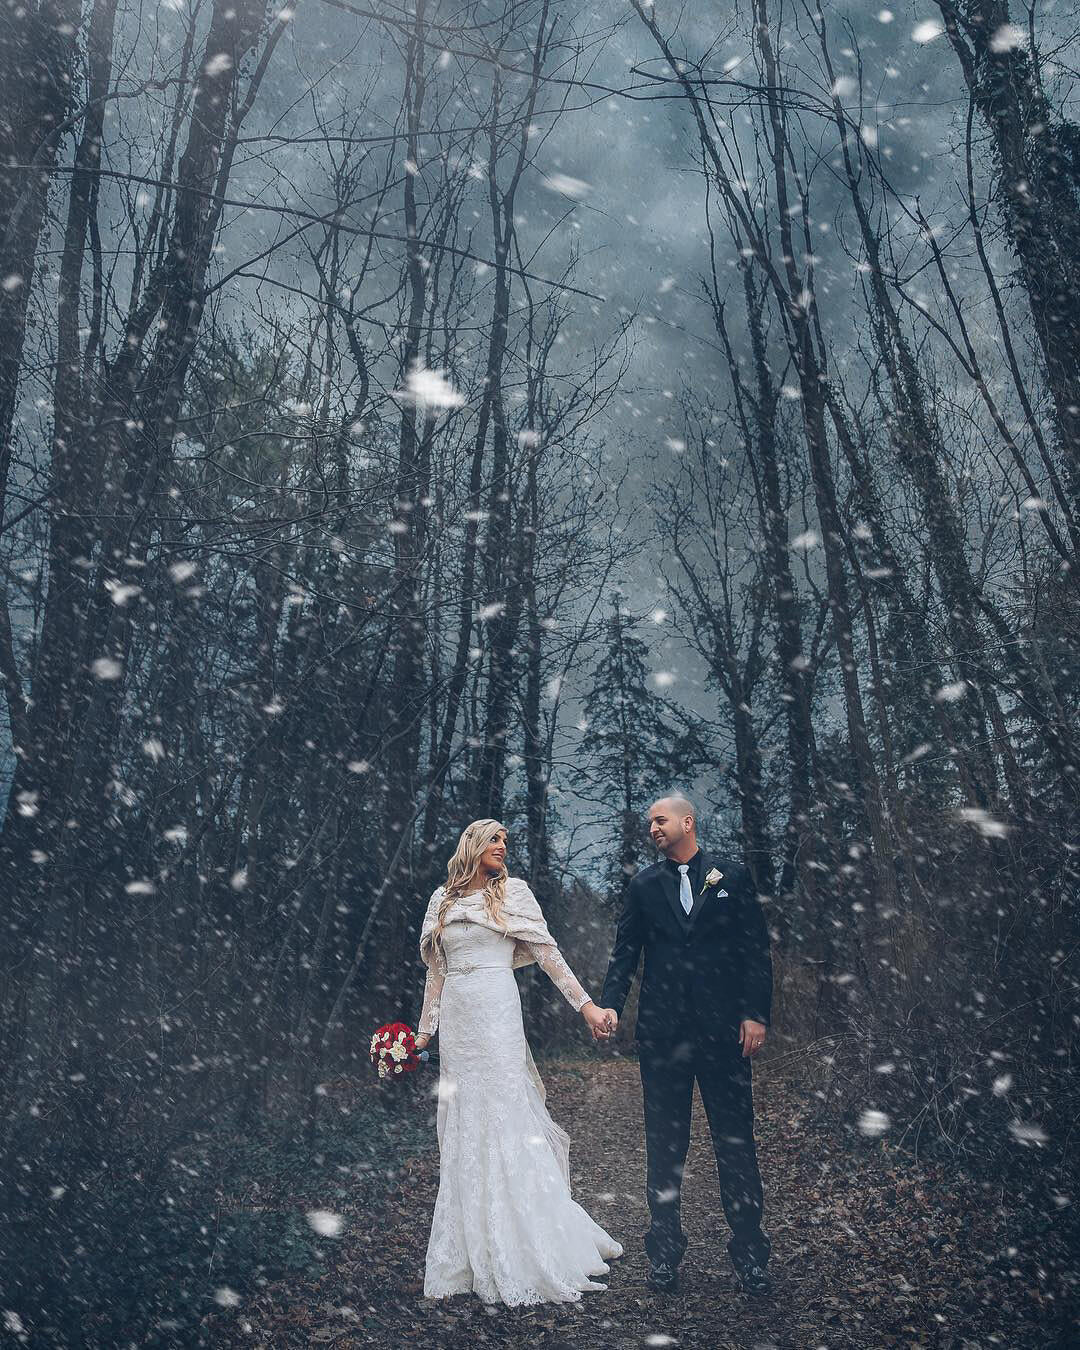 A winter wedding photoshoot of bride and groom walking hand-in-hand  during the snowfall